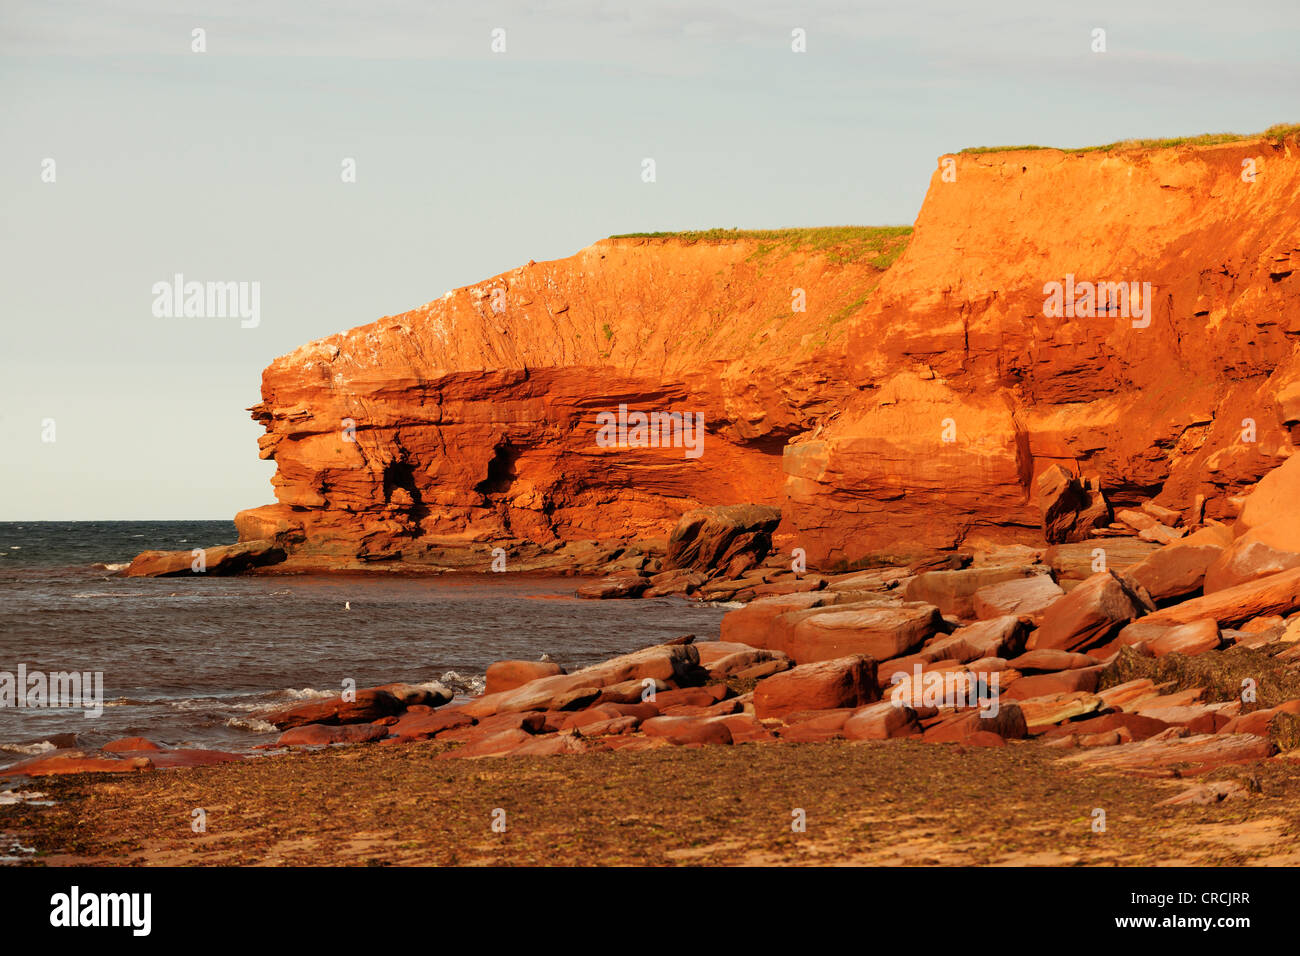 Red sandstone cliffs, typical coastline in Prince Edward Island National Park, Prince Edward Island, Canada Stock Photo